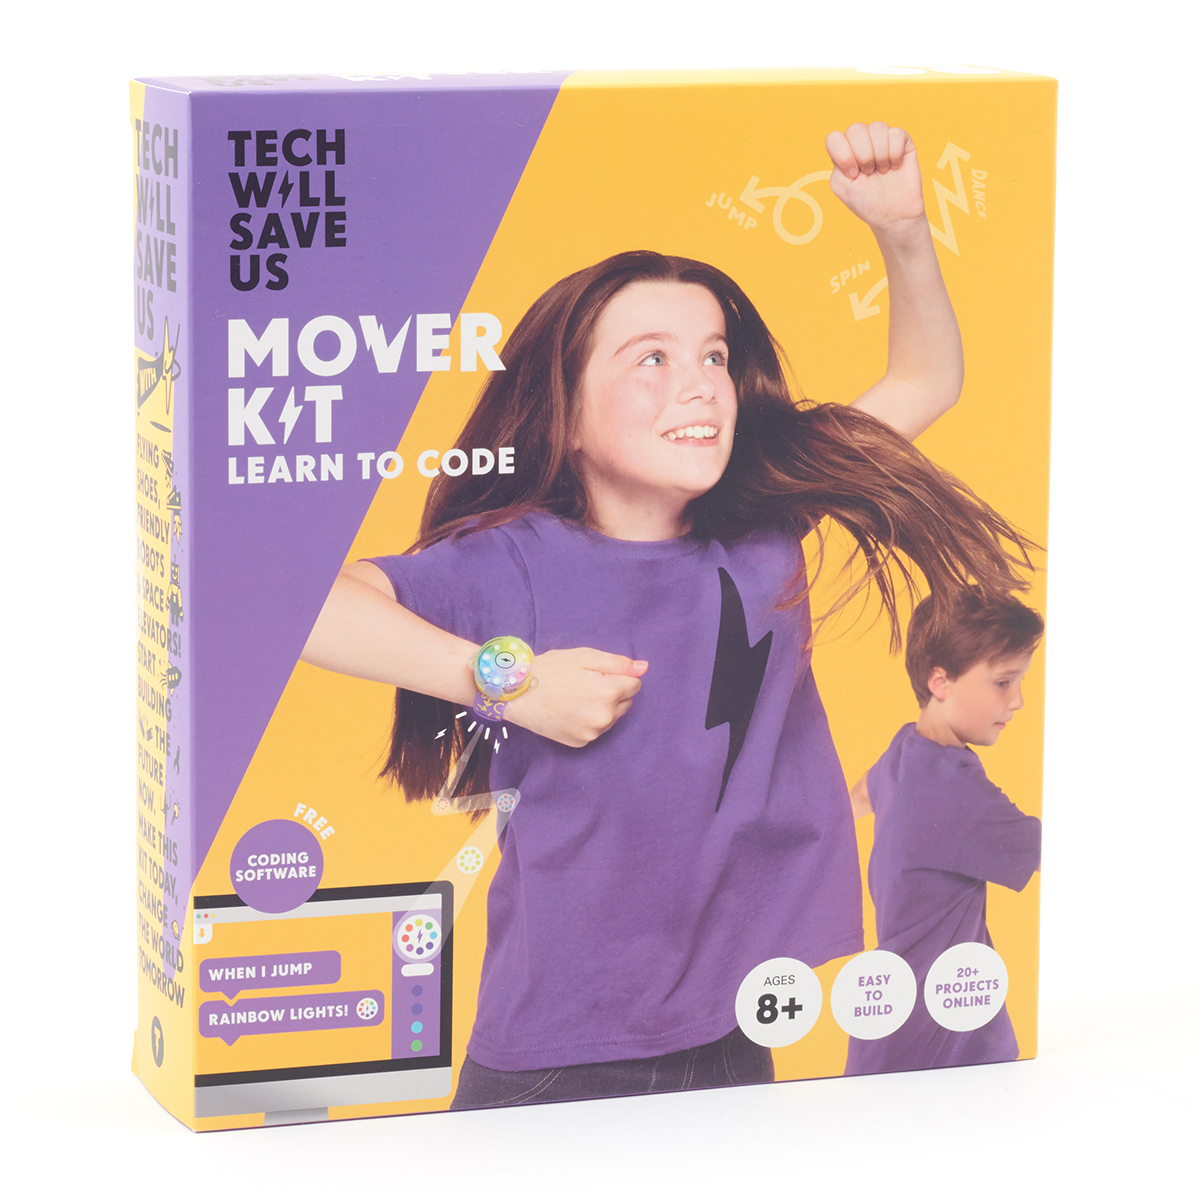 Technology Will Save Us coding kit